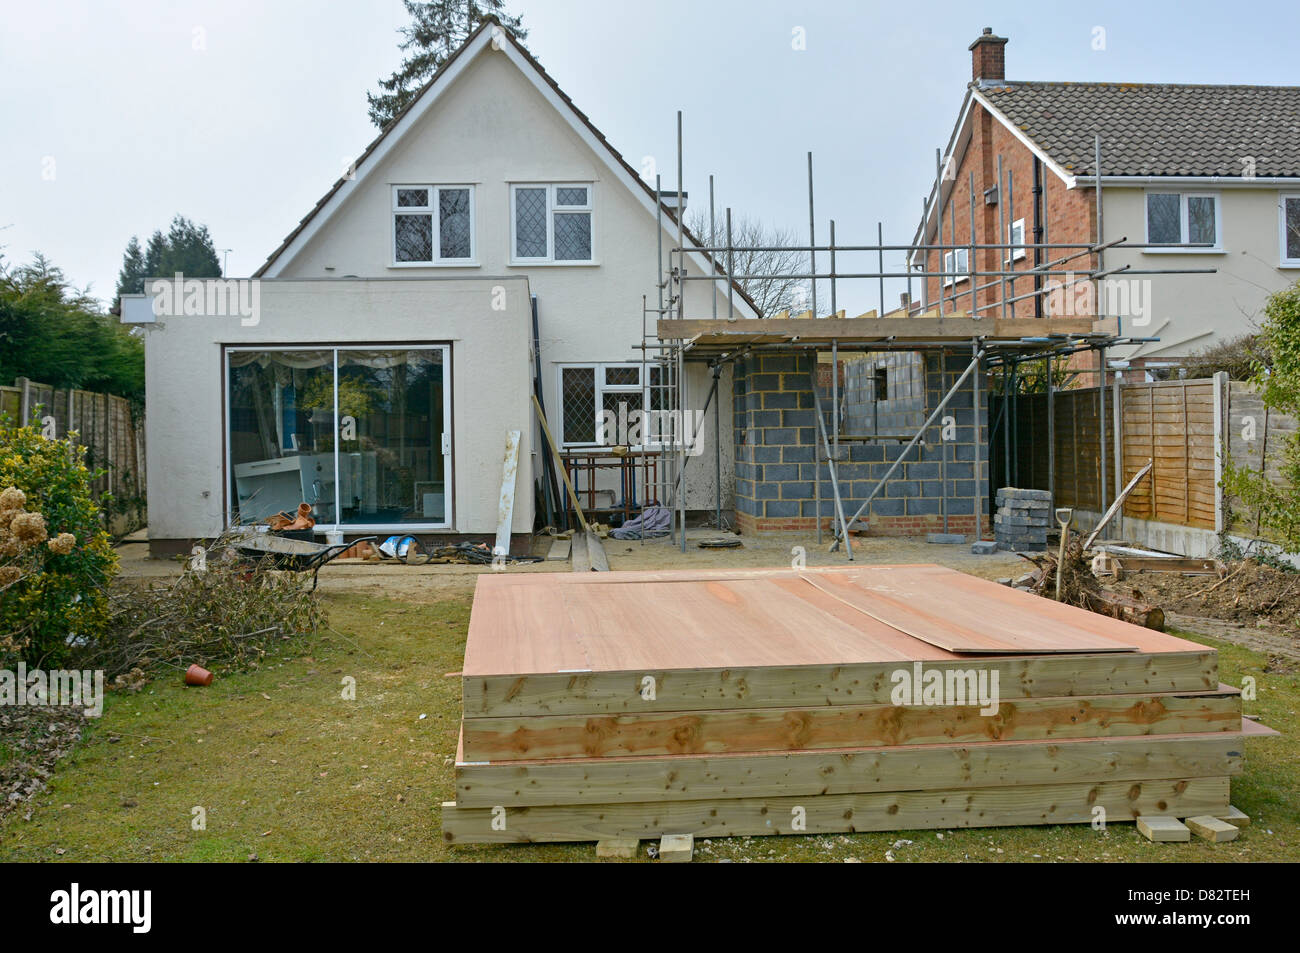 Timber Frame Prefabricated Construction Panels To Form Bedroom Stock